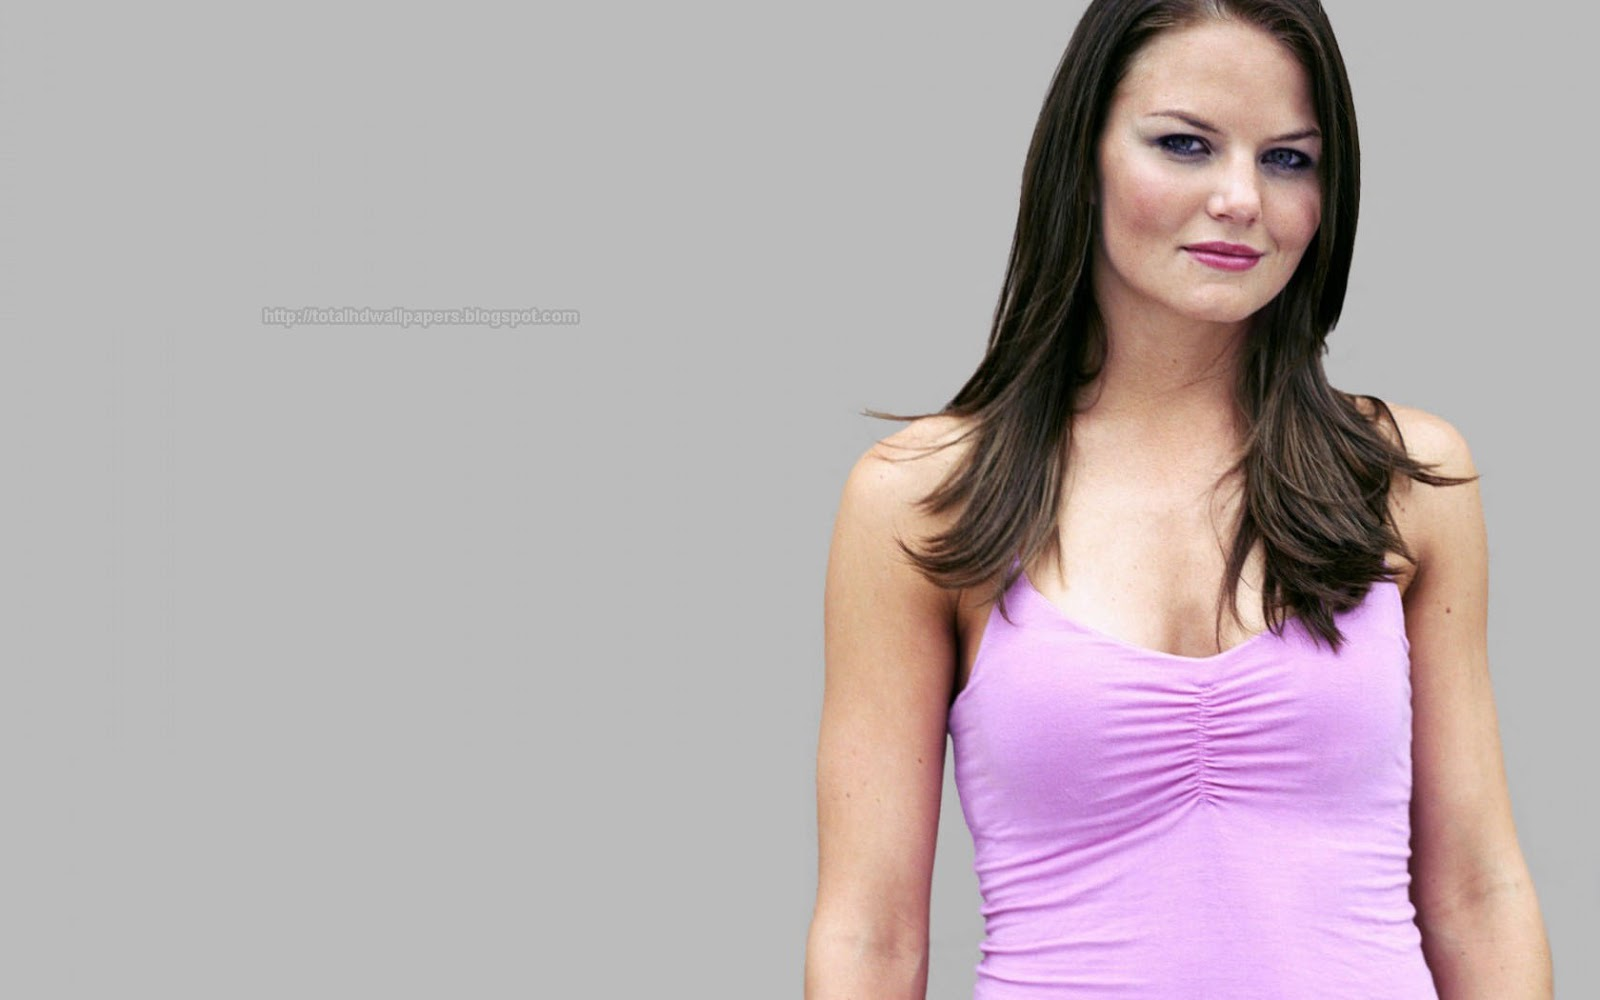 Jennifer Morrison Wallpapers High Resolution and Quality Download 1600x1000